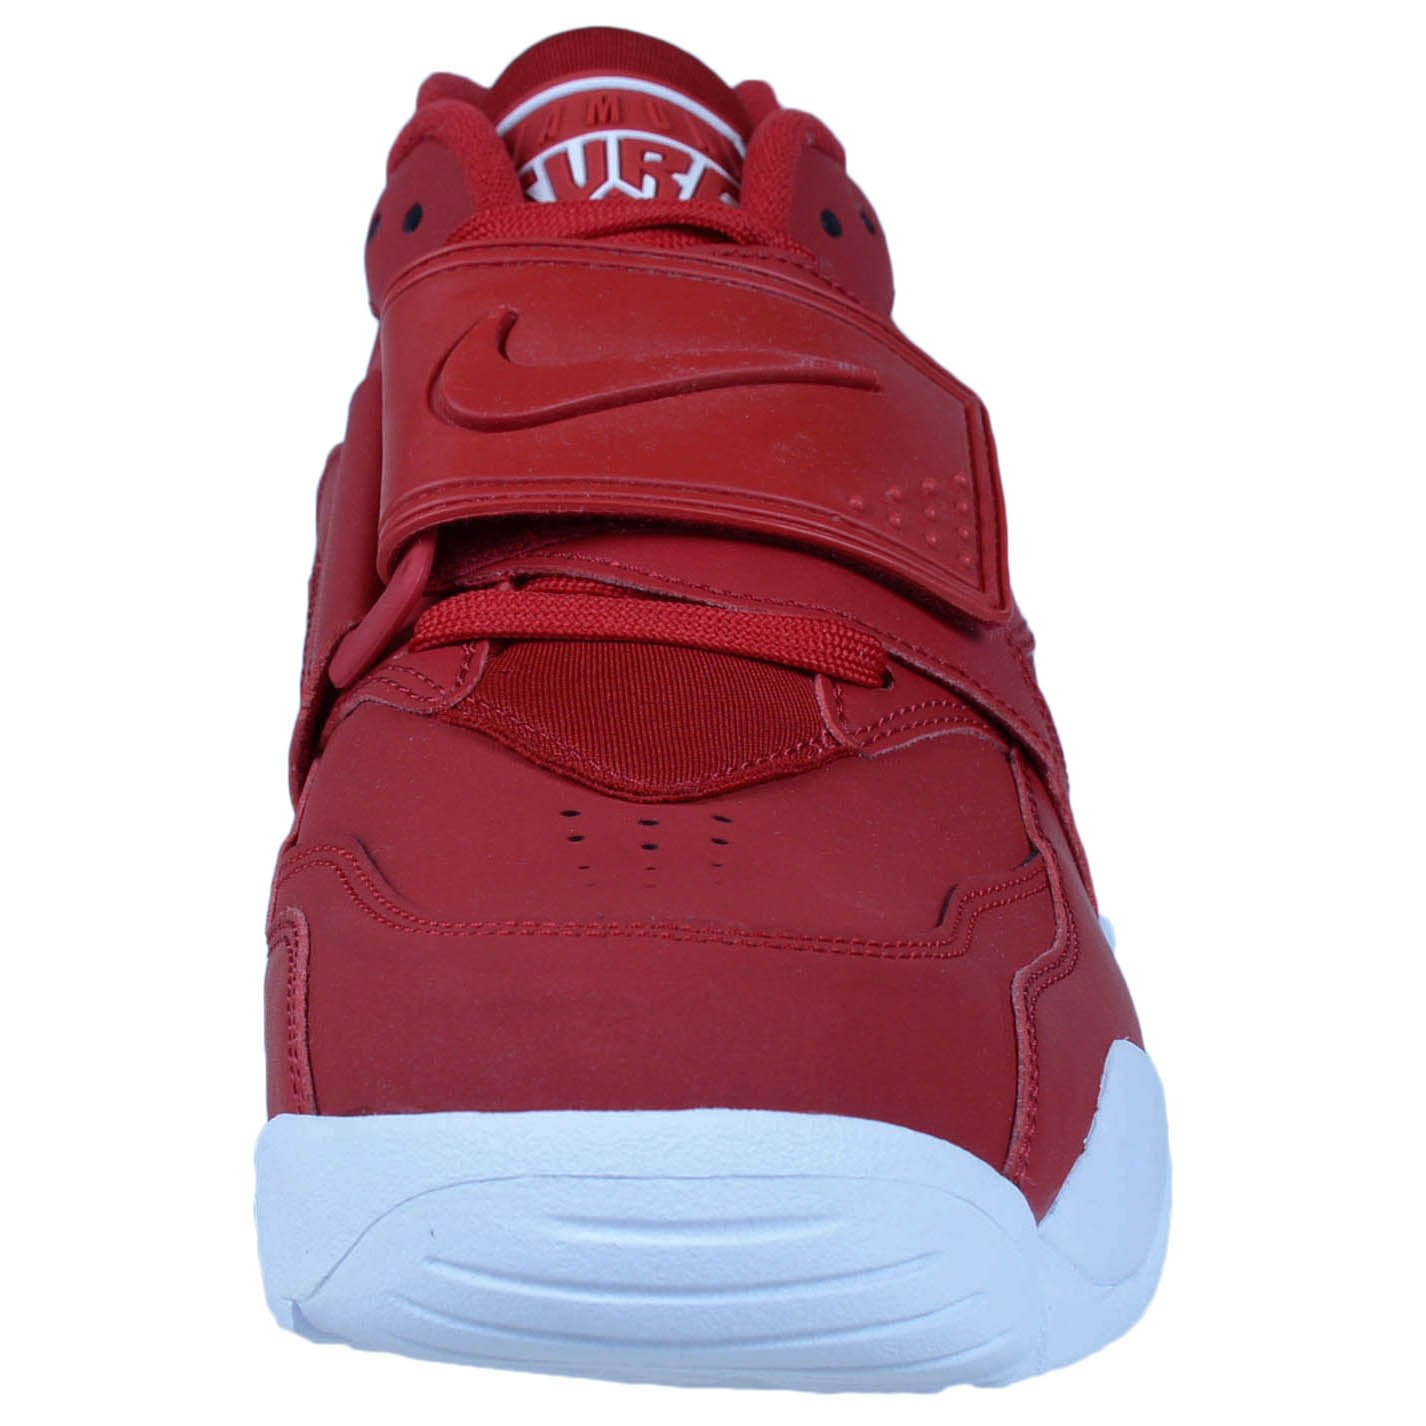 Nike Air Diamond Turf Gym Red/Gym Red-White (12 D(M) US) by Nike (Image #5)